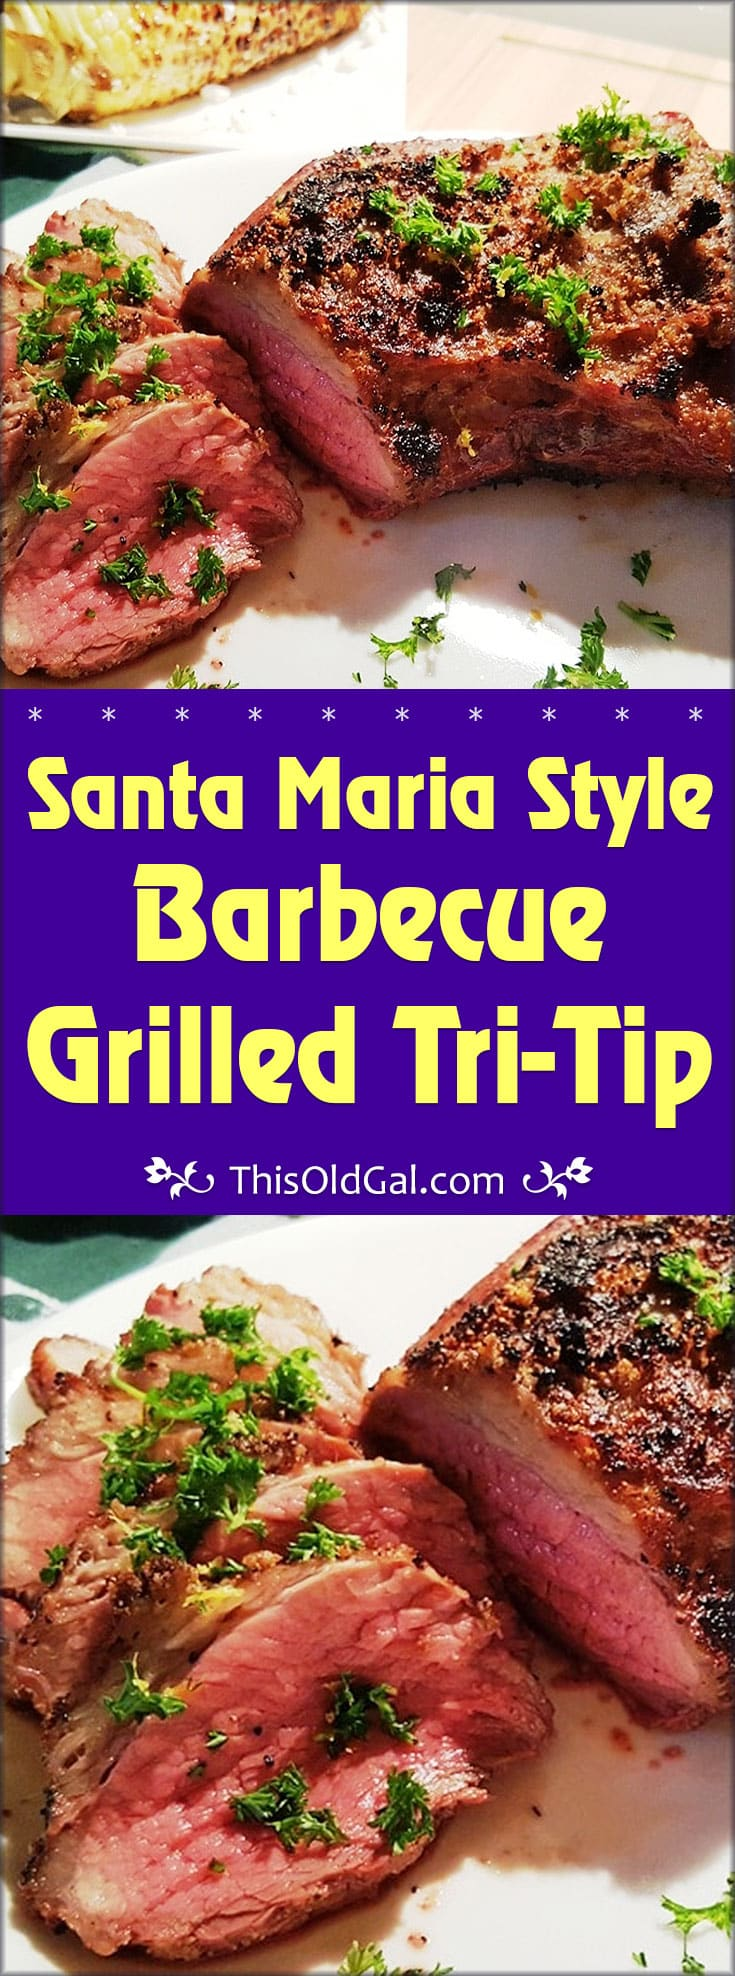 Santa Maria Style Barbecue Grilled Tri-Tip